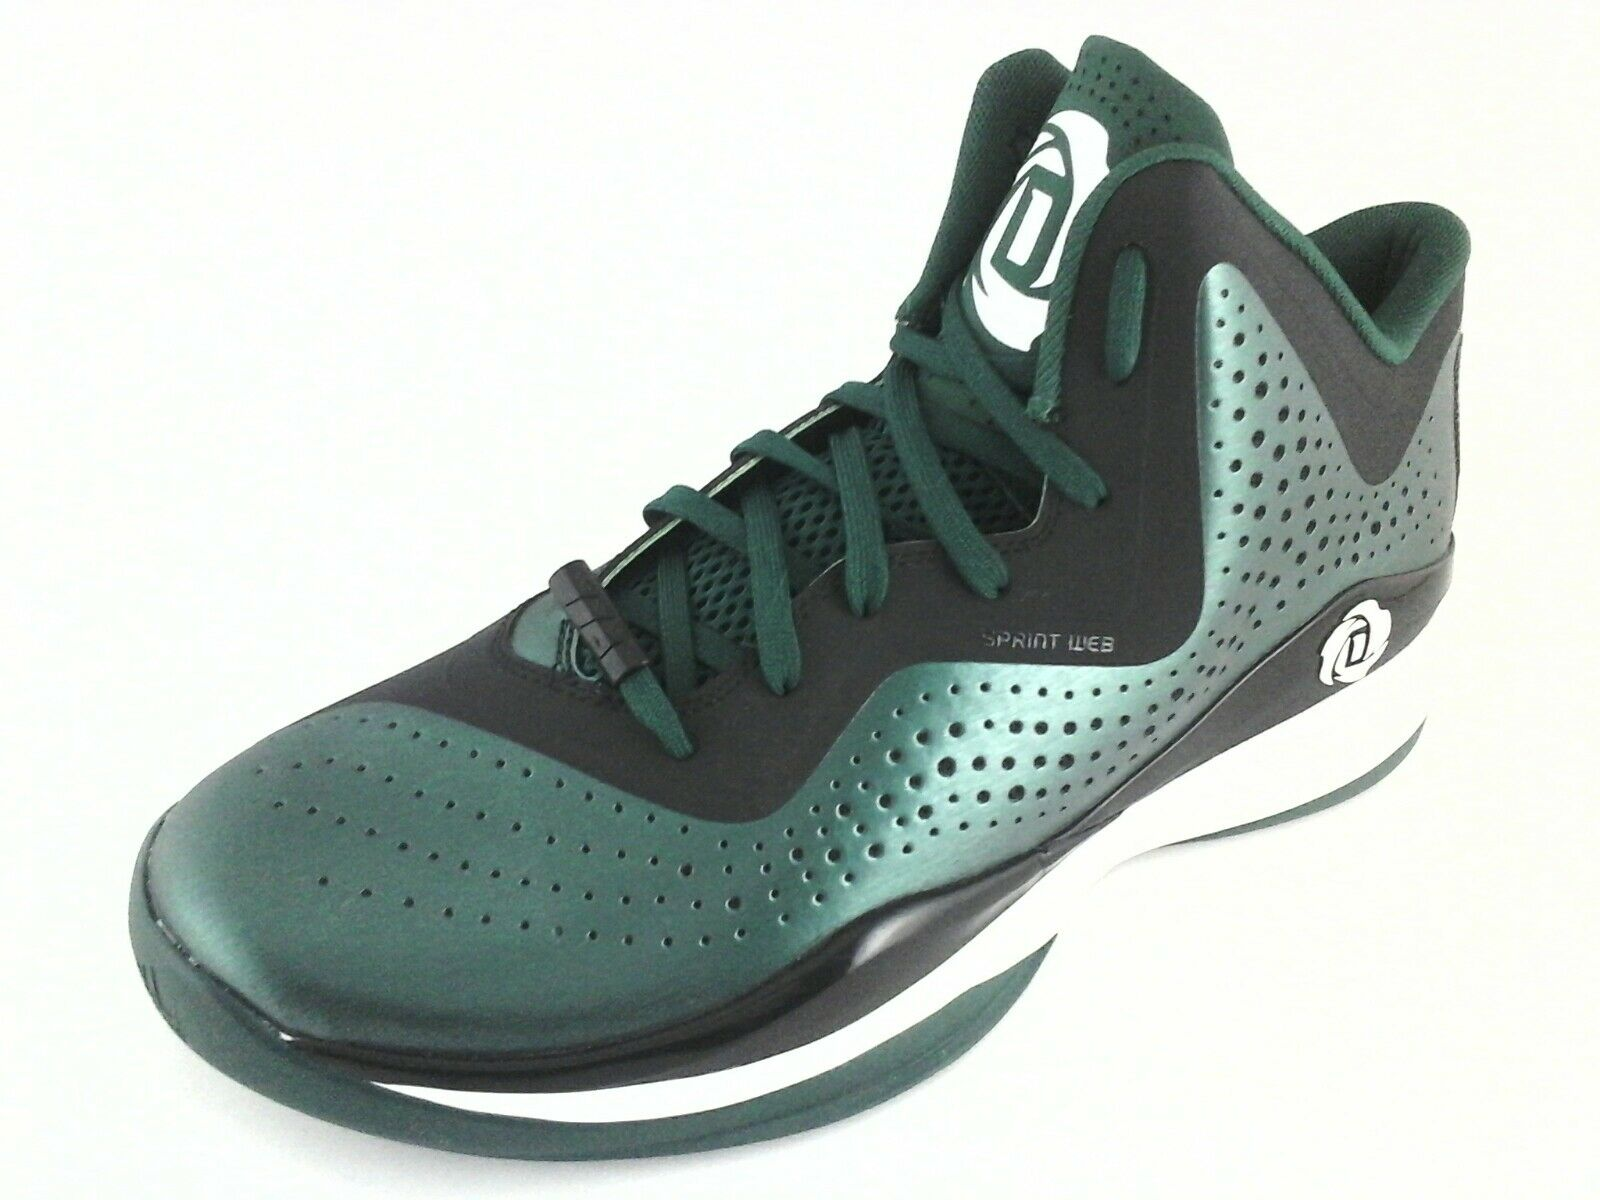 3659d7d4d321 Adidas D Rose 773 Men s Basketball Shoes C75723 Green Black US 12 EU 46 2 3  New